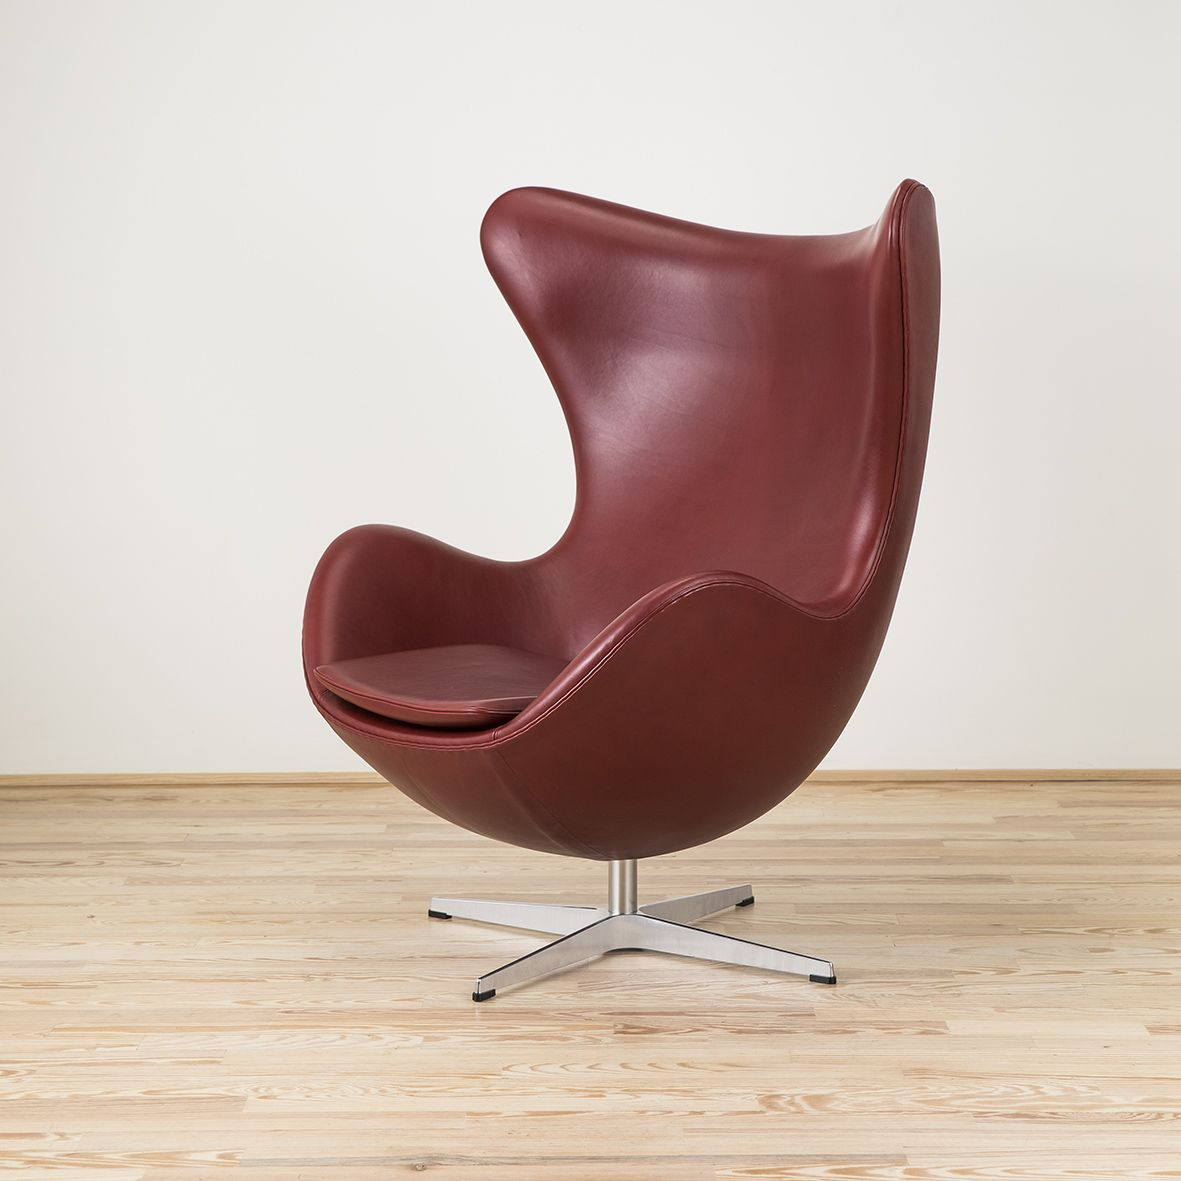 Poltrona Uovo Jacobsen Originale Butaca Huevo Indian Red Fritz Hansen